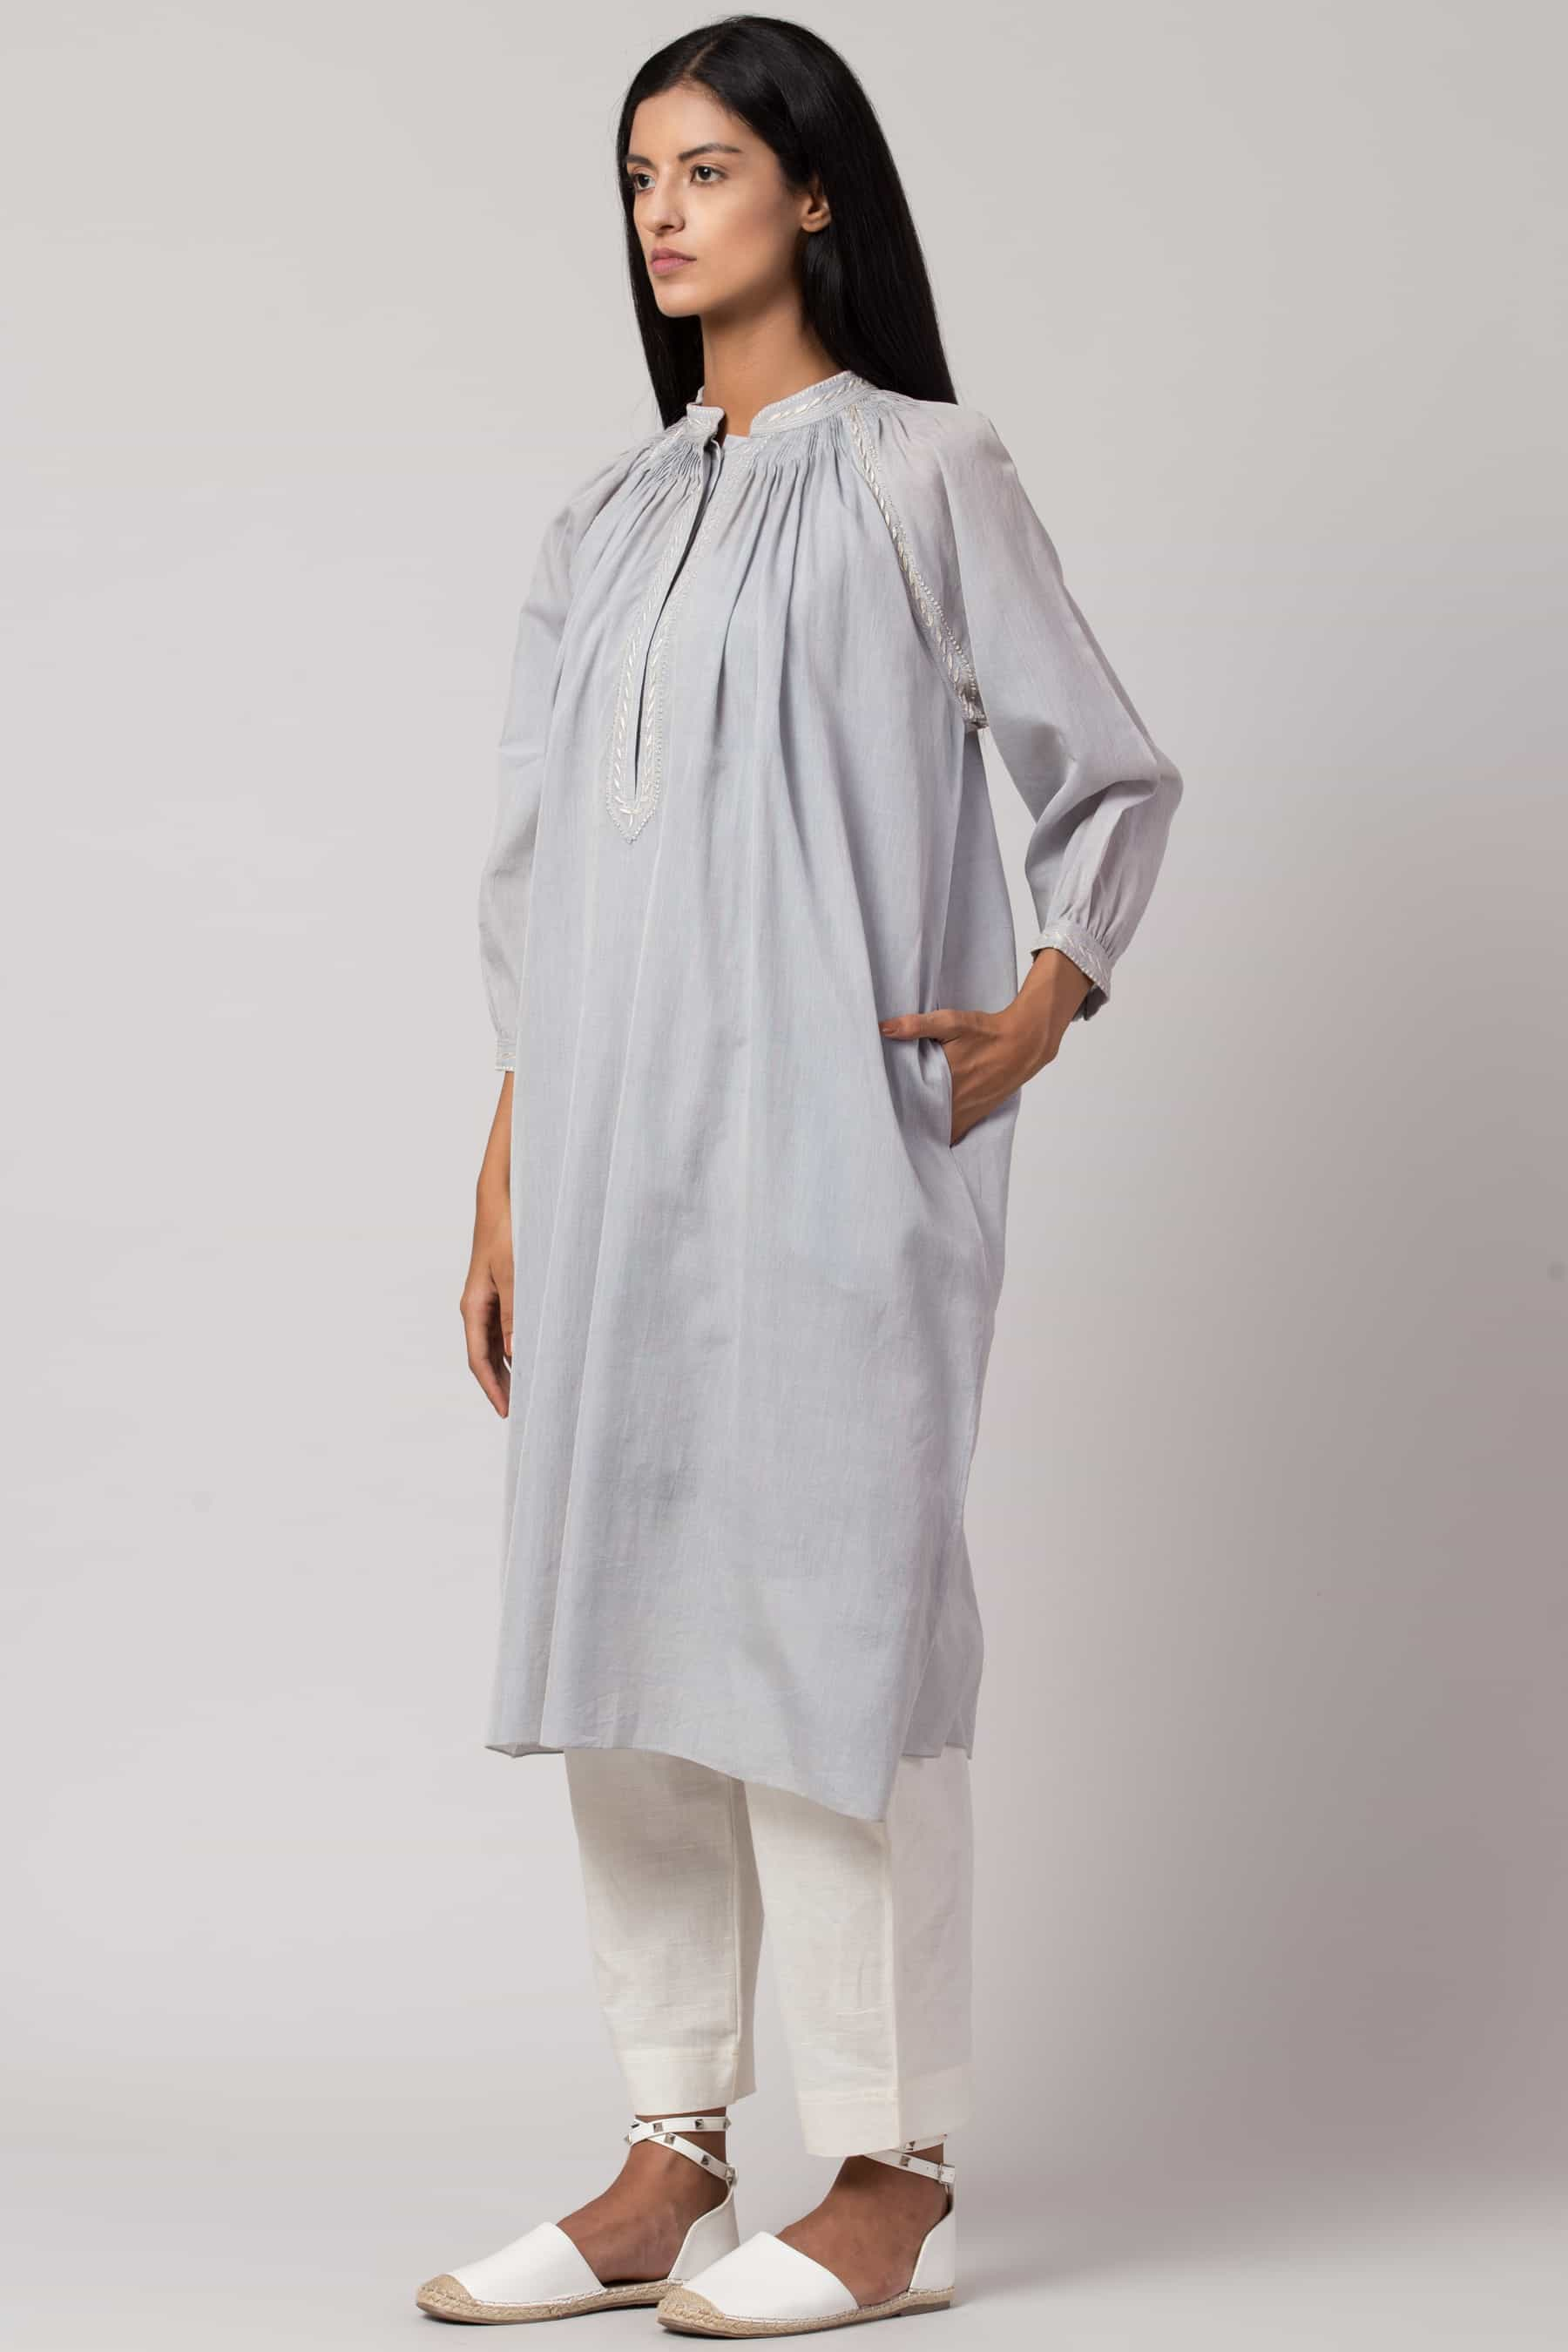 Baby blue Chikankari tunic made in 100% handwoven yarn dyed cotton Chanderi - side